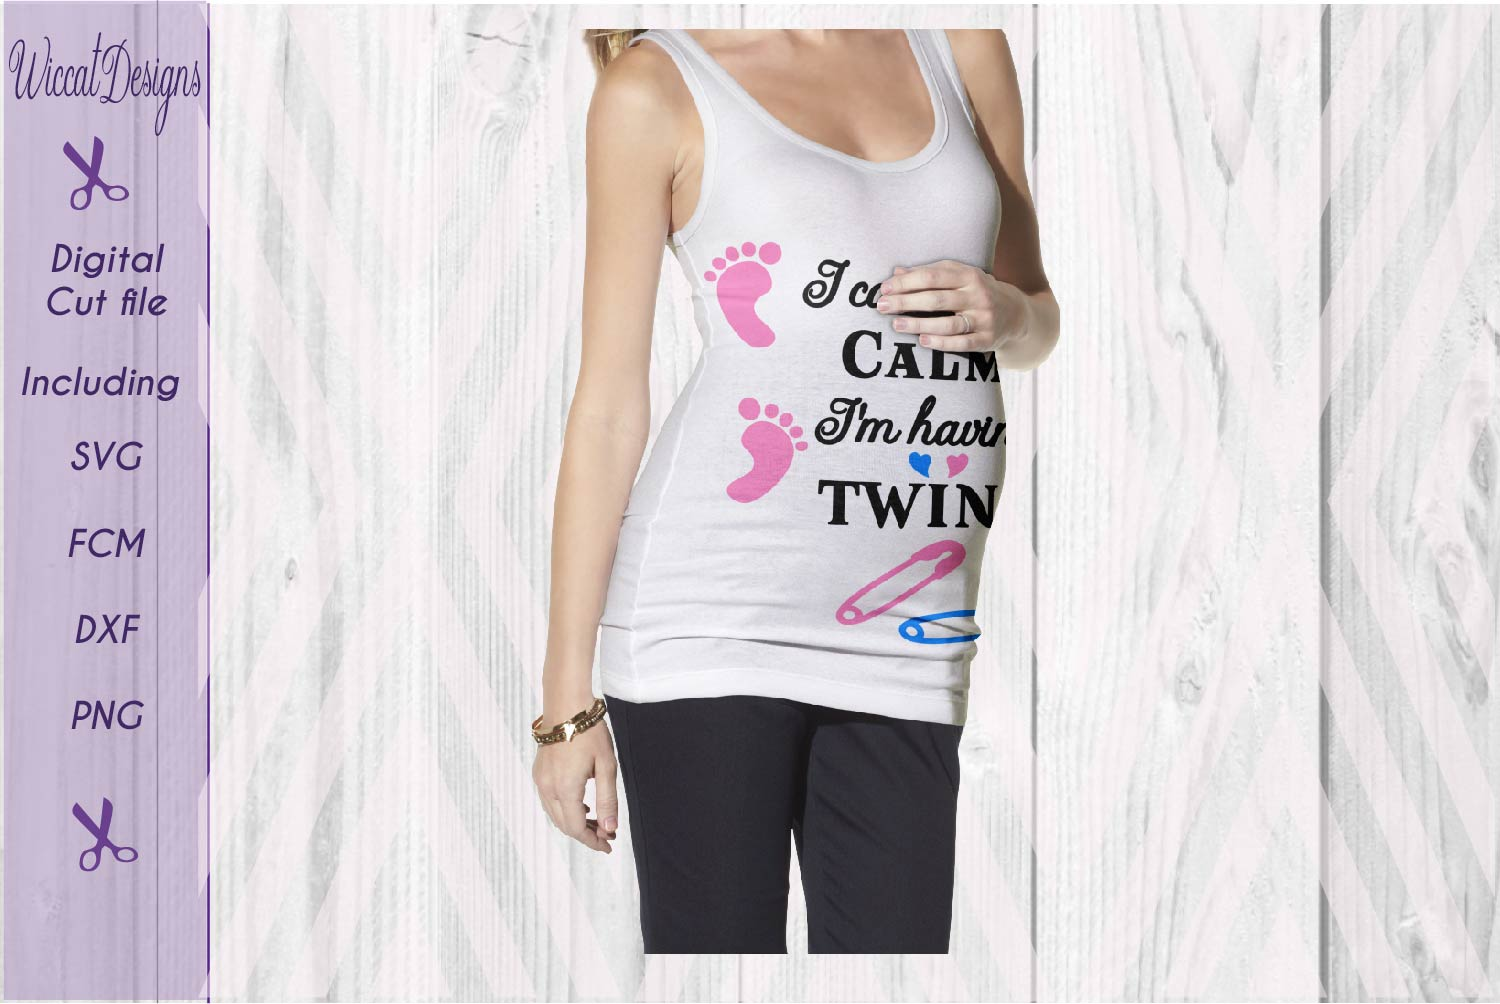 Twins svg, pregnant svg, Quotes svg, Keep calm svg, newborn example image 1